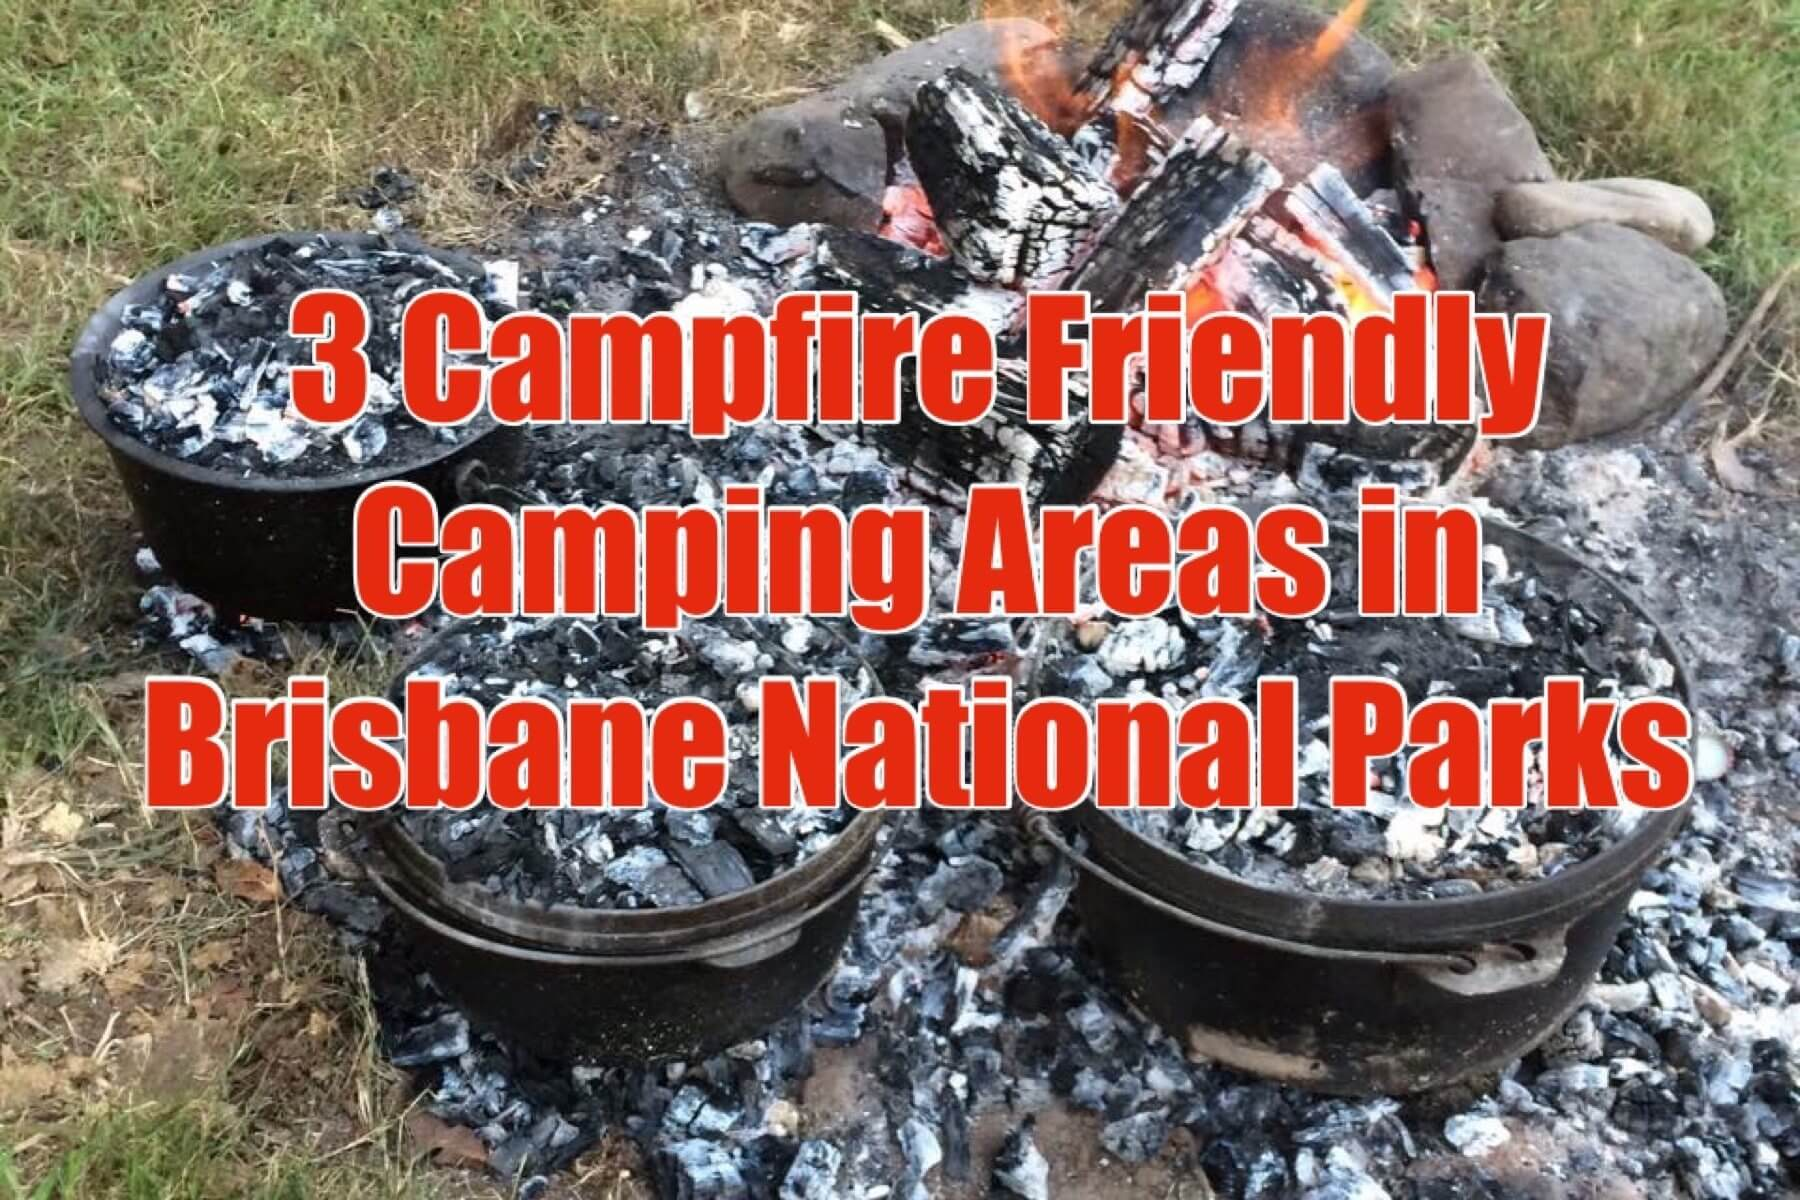 3 National Parks in Brisbane That are Campfire Friendly